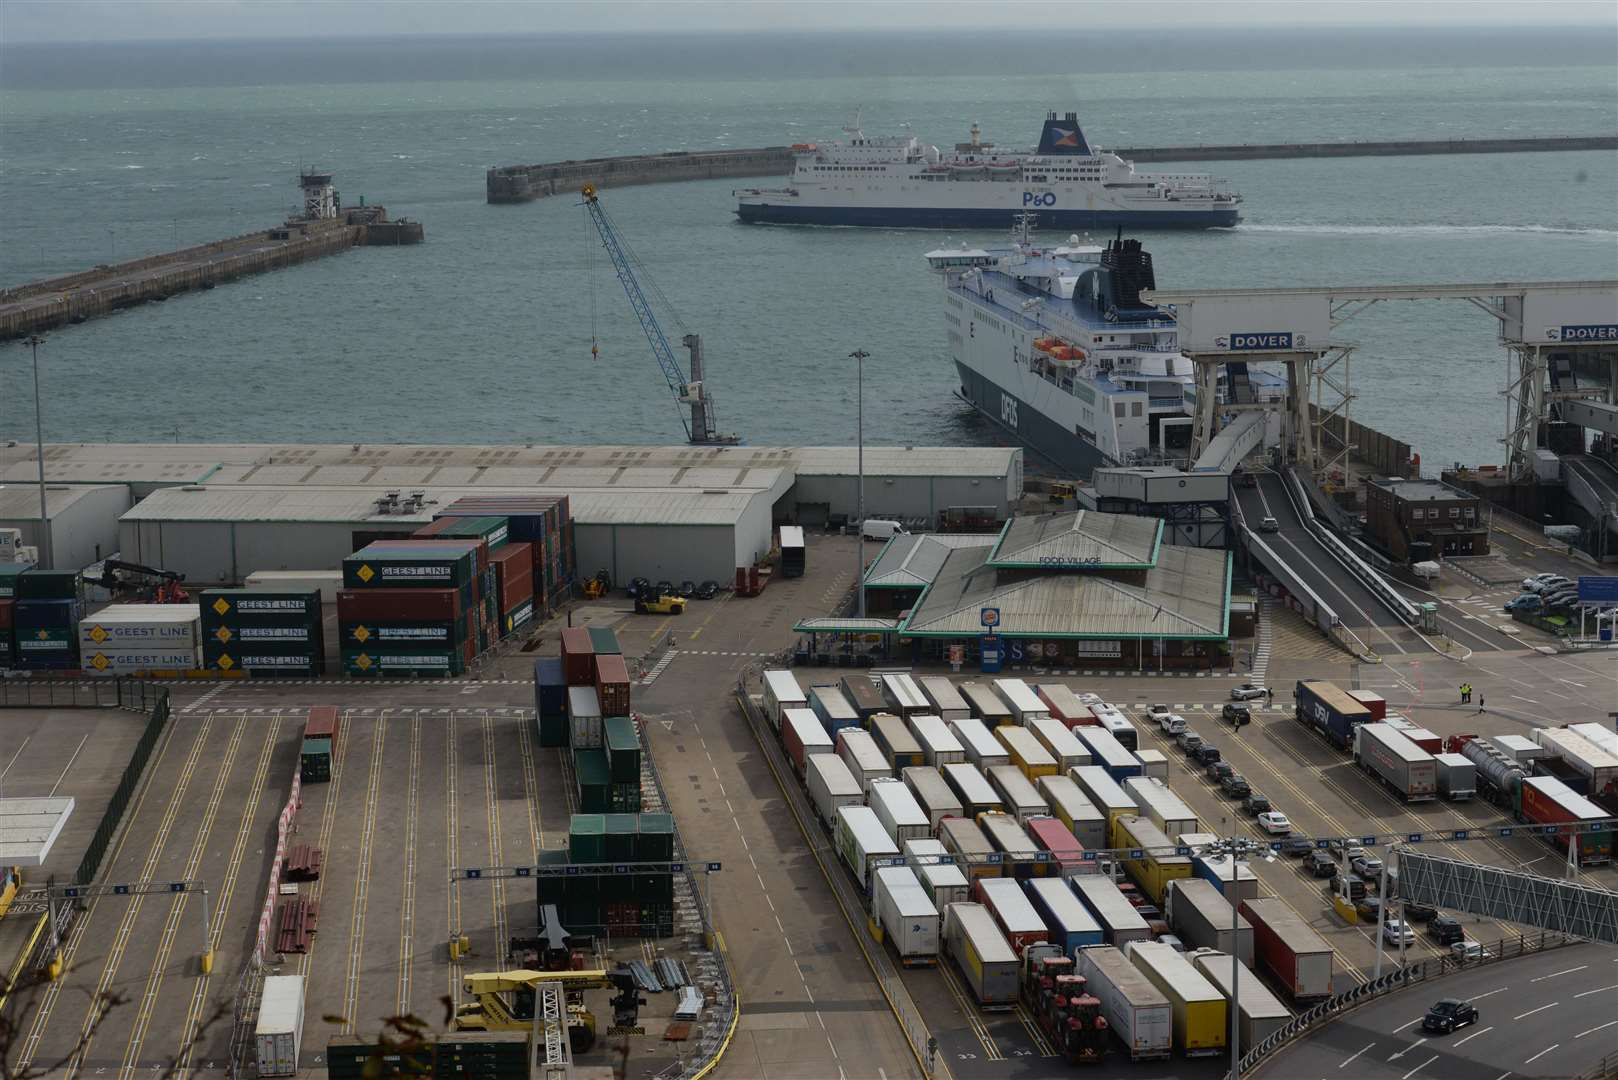 The first group was found at Dover Eastern Docks. Library image